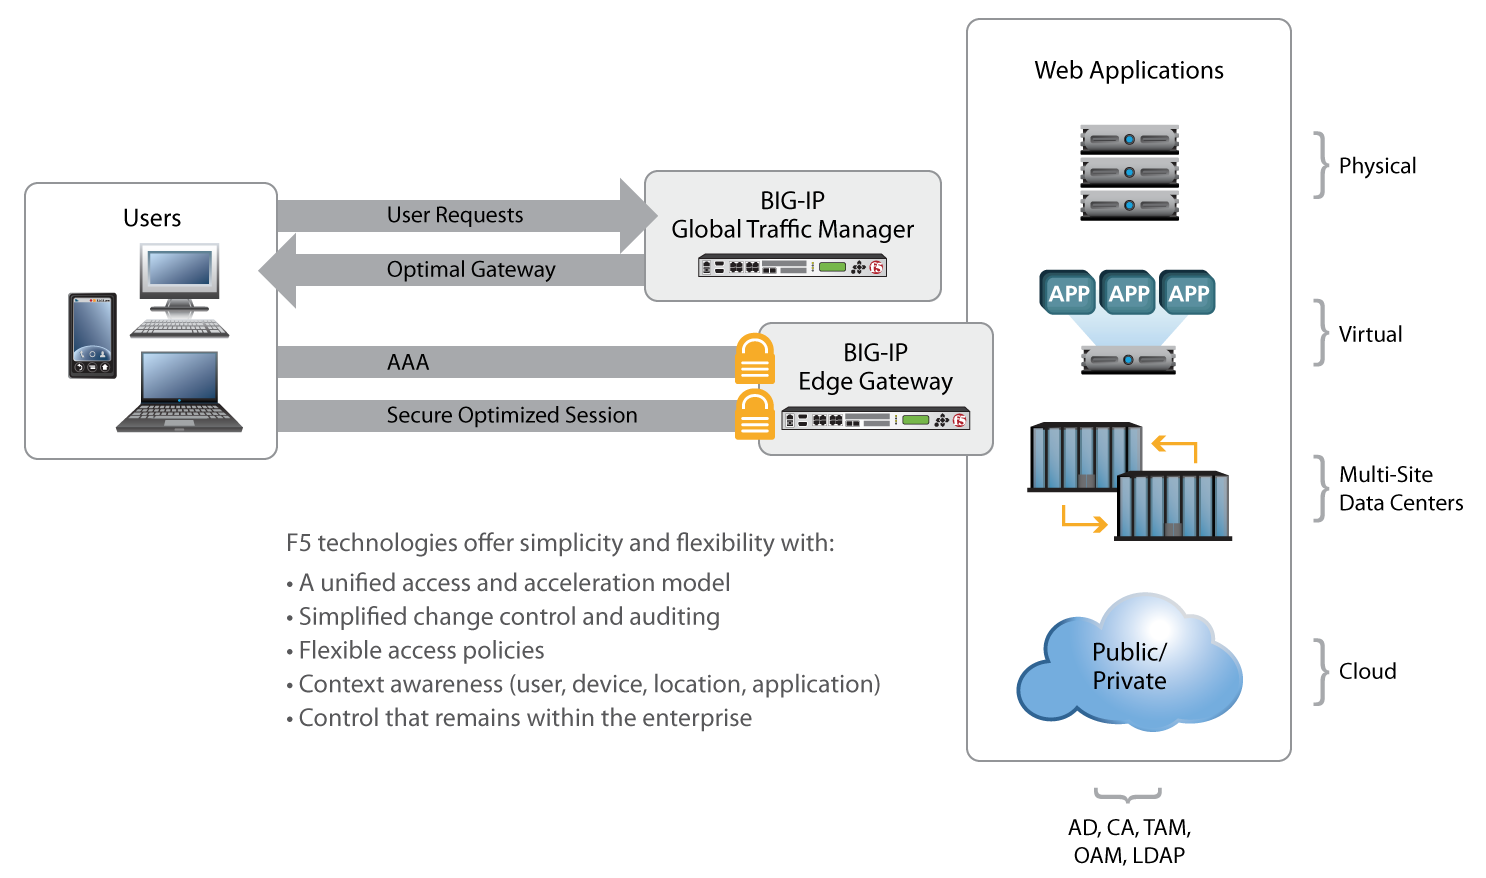 Designing F5 Application Delivery to Maximize Business Value